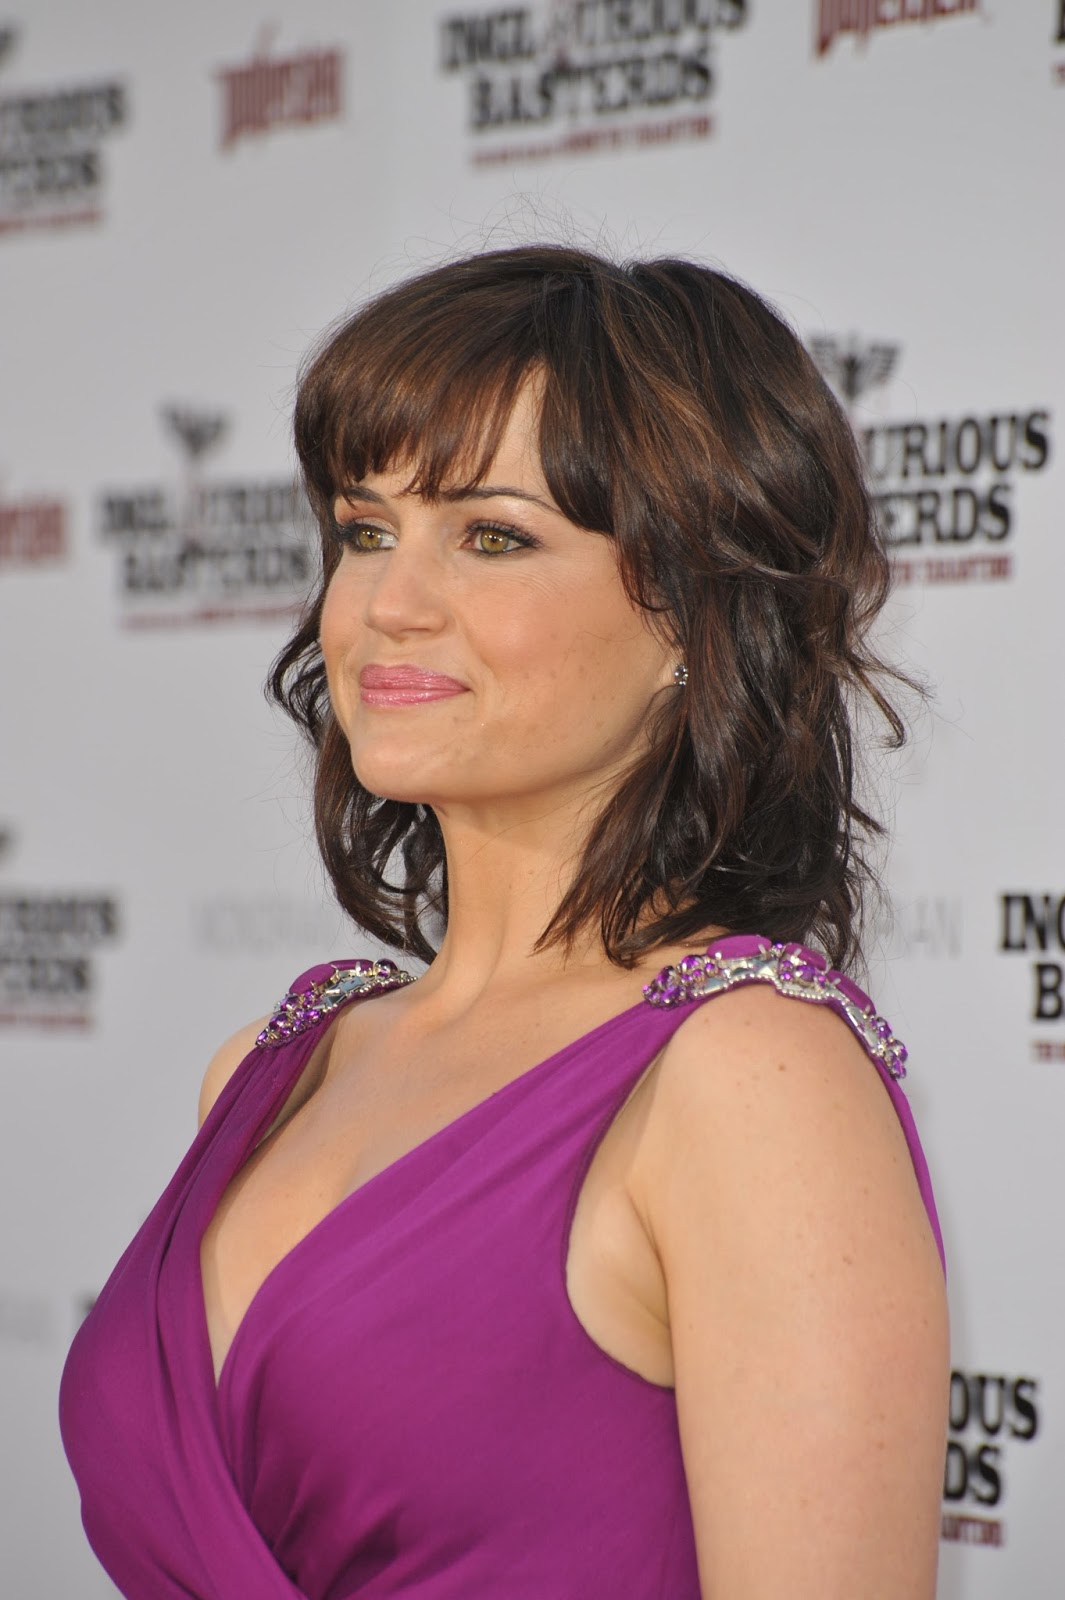 Hot Carla Gugino naked (16 foto and video), Tits, Leaked, Boobs, cleavage 2017